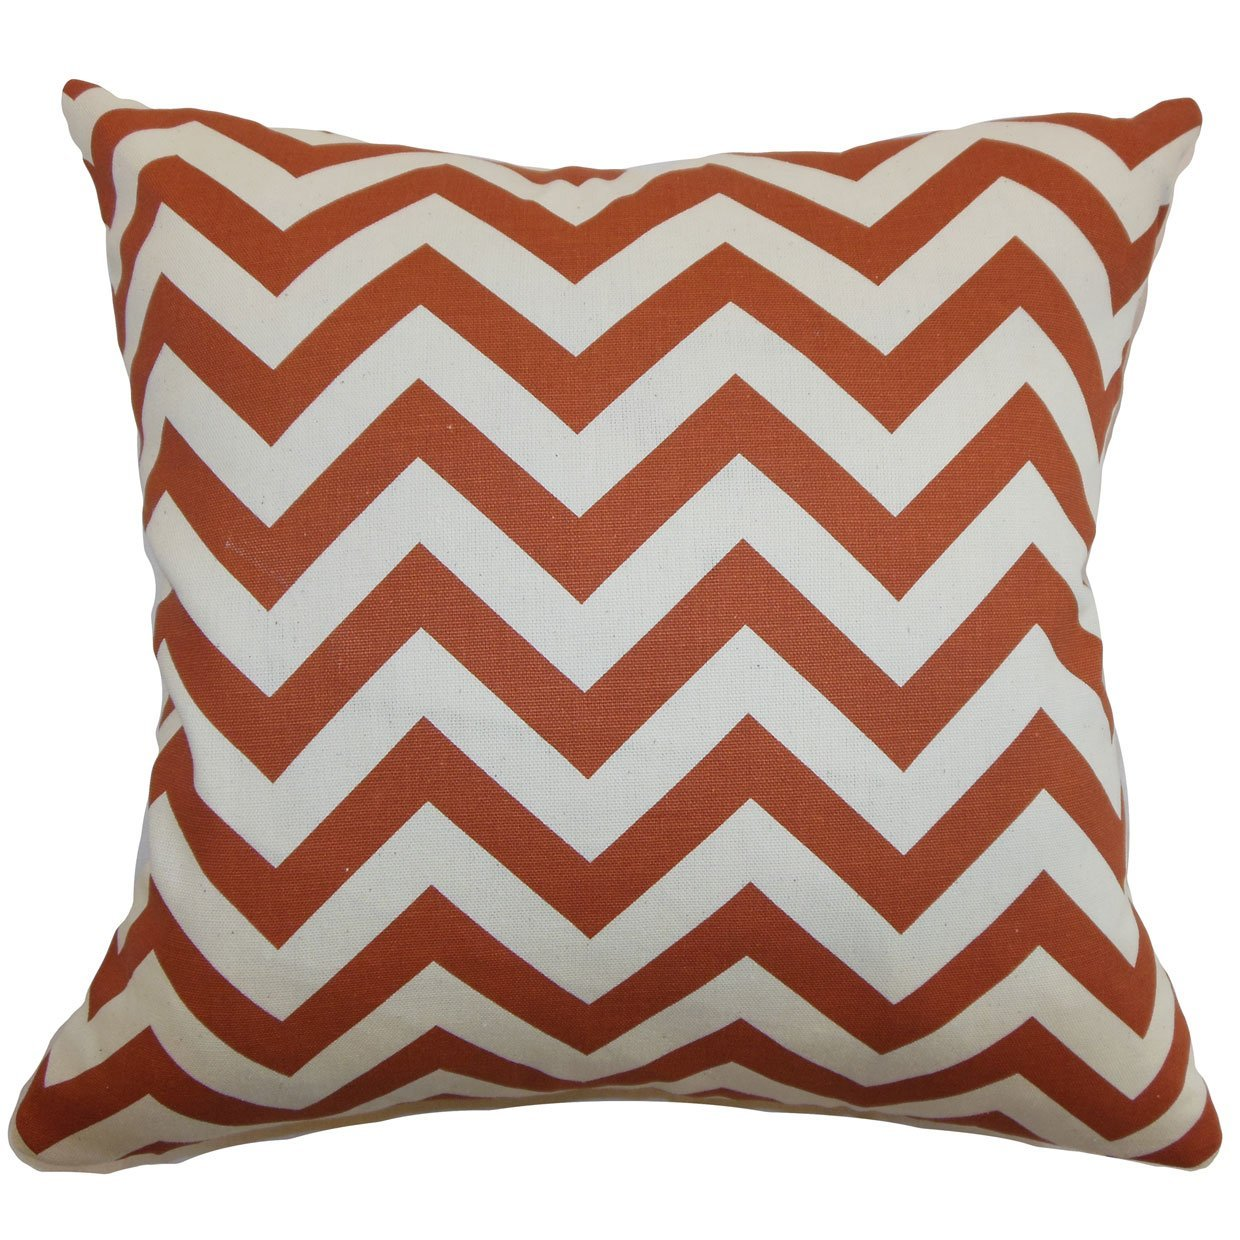 Welch Throw Pillow Cover